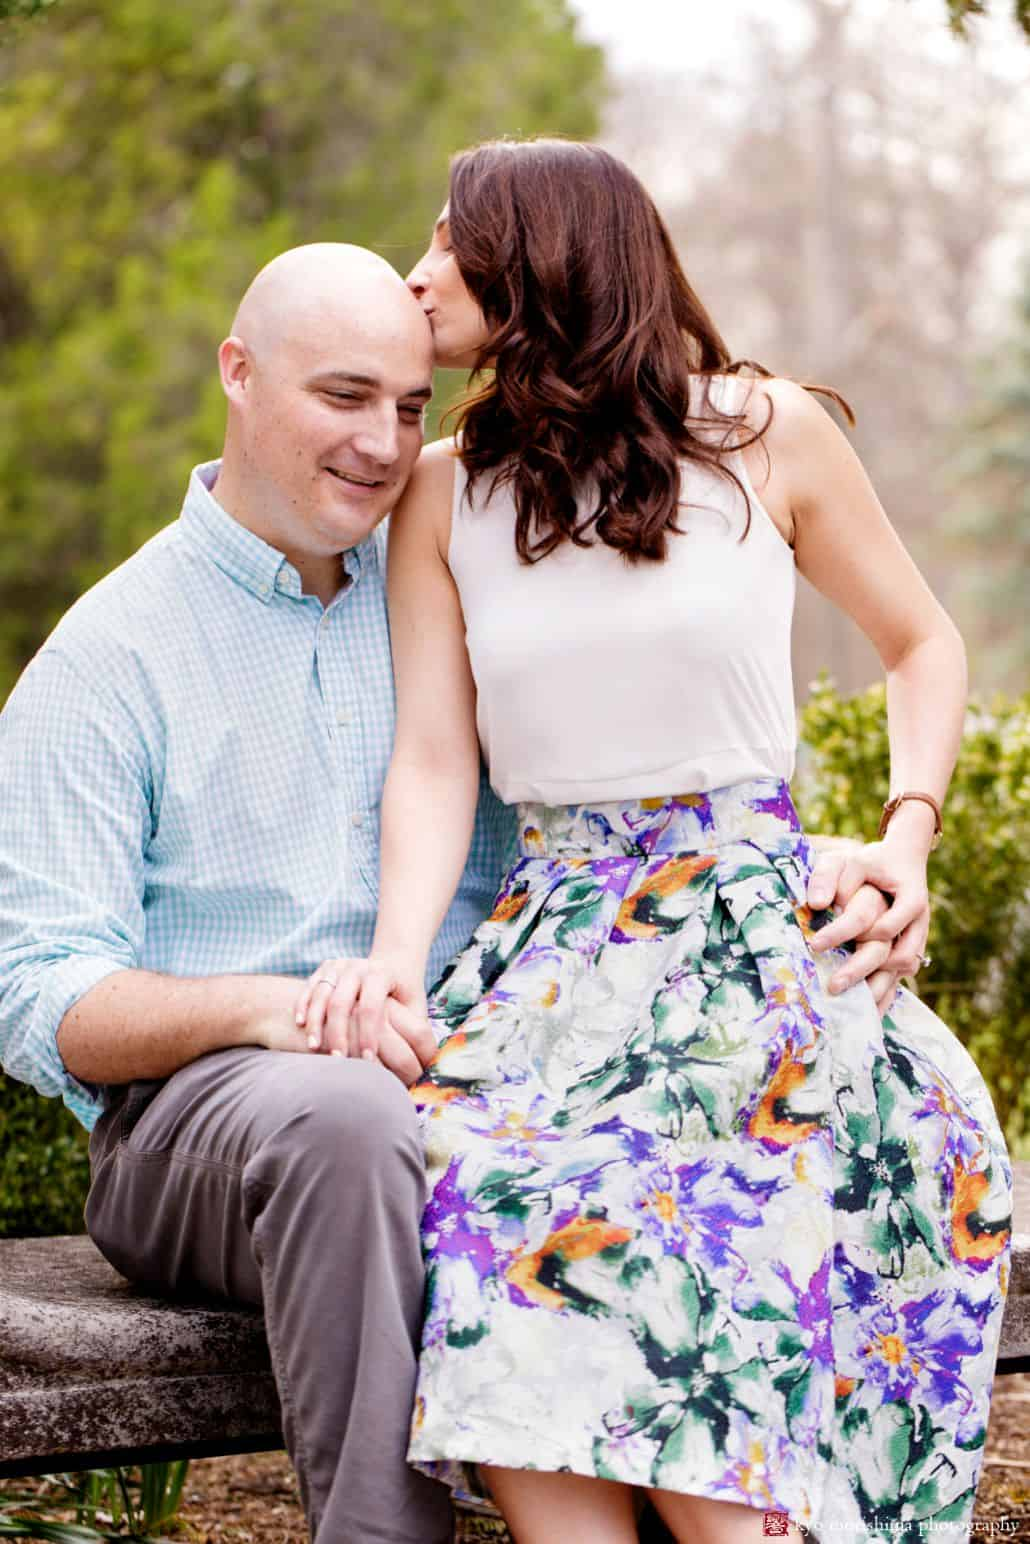 Woman kisses man's head while sitting on stone bench at Hillsborough, NJ engagement photo shoot. Woman wears white blouse and floral skirt. Man wears light blue gingham shirt.